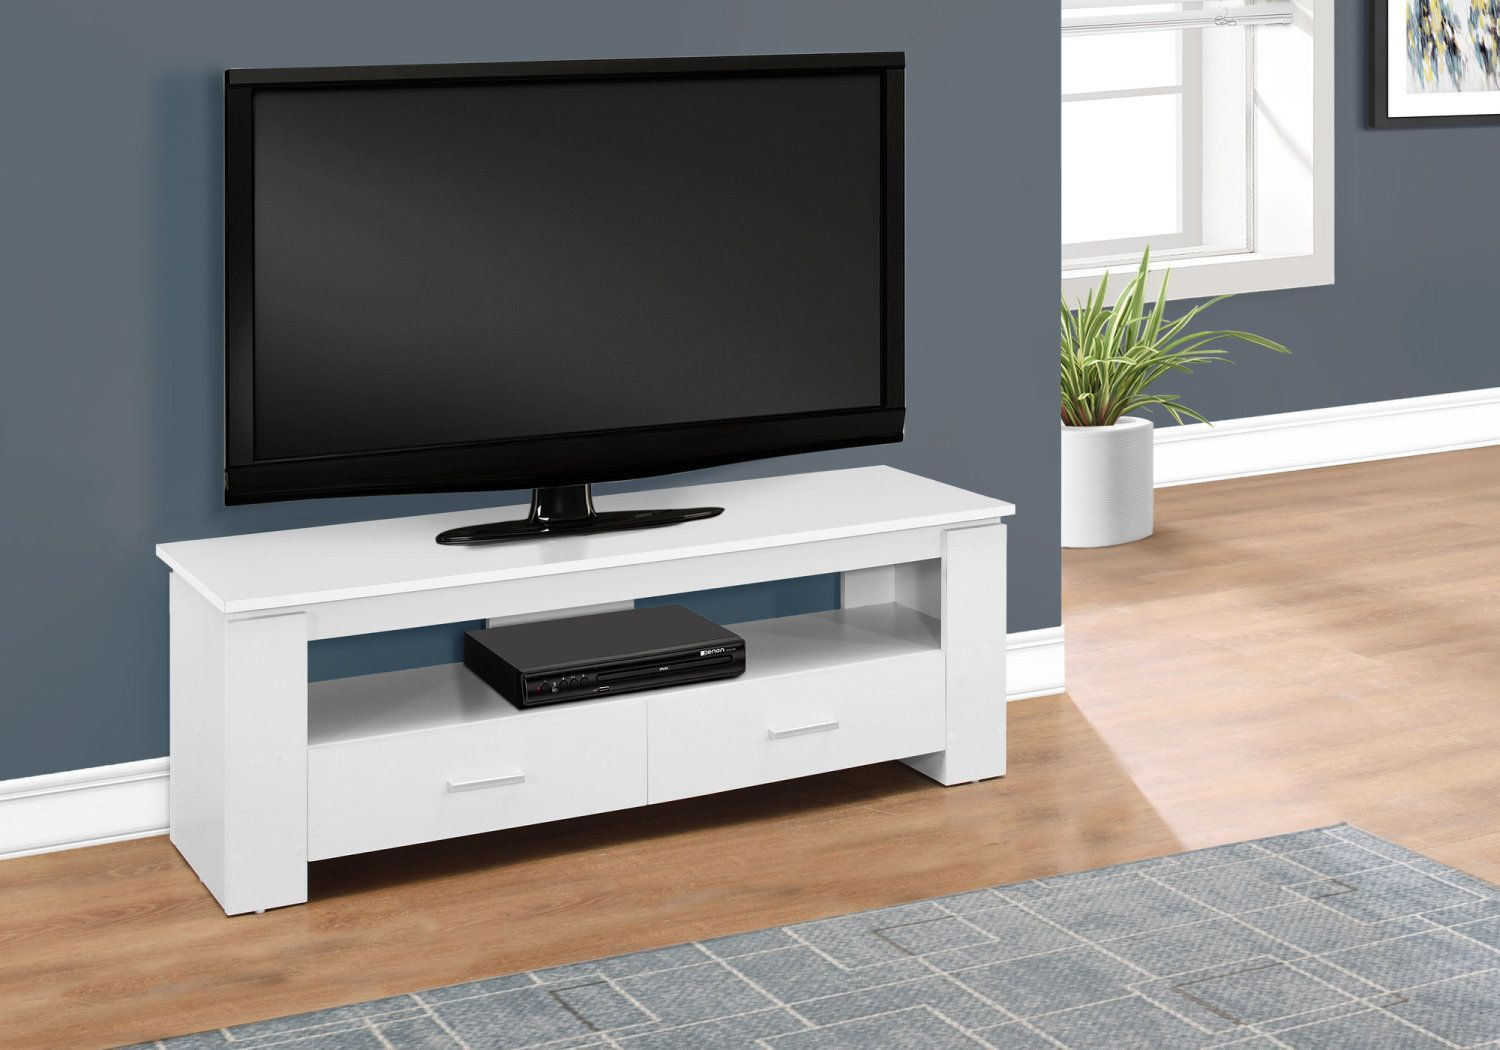 Meuble Tele Surplus Rd Contemporary Tv Stands Storage Drawers Monarch Specialties